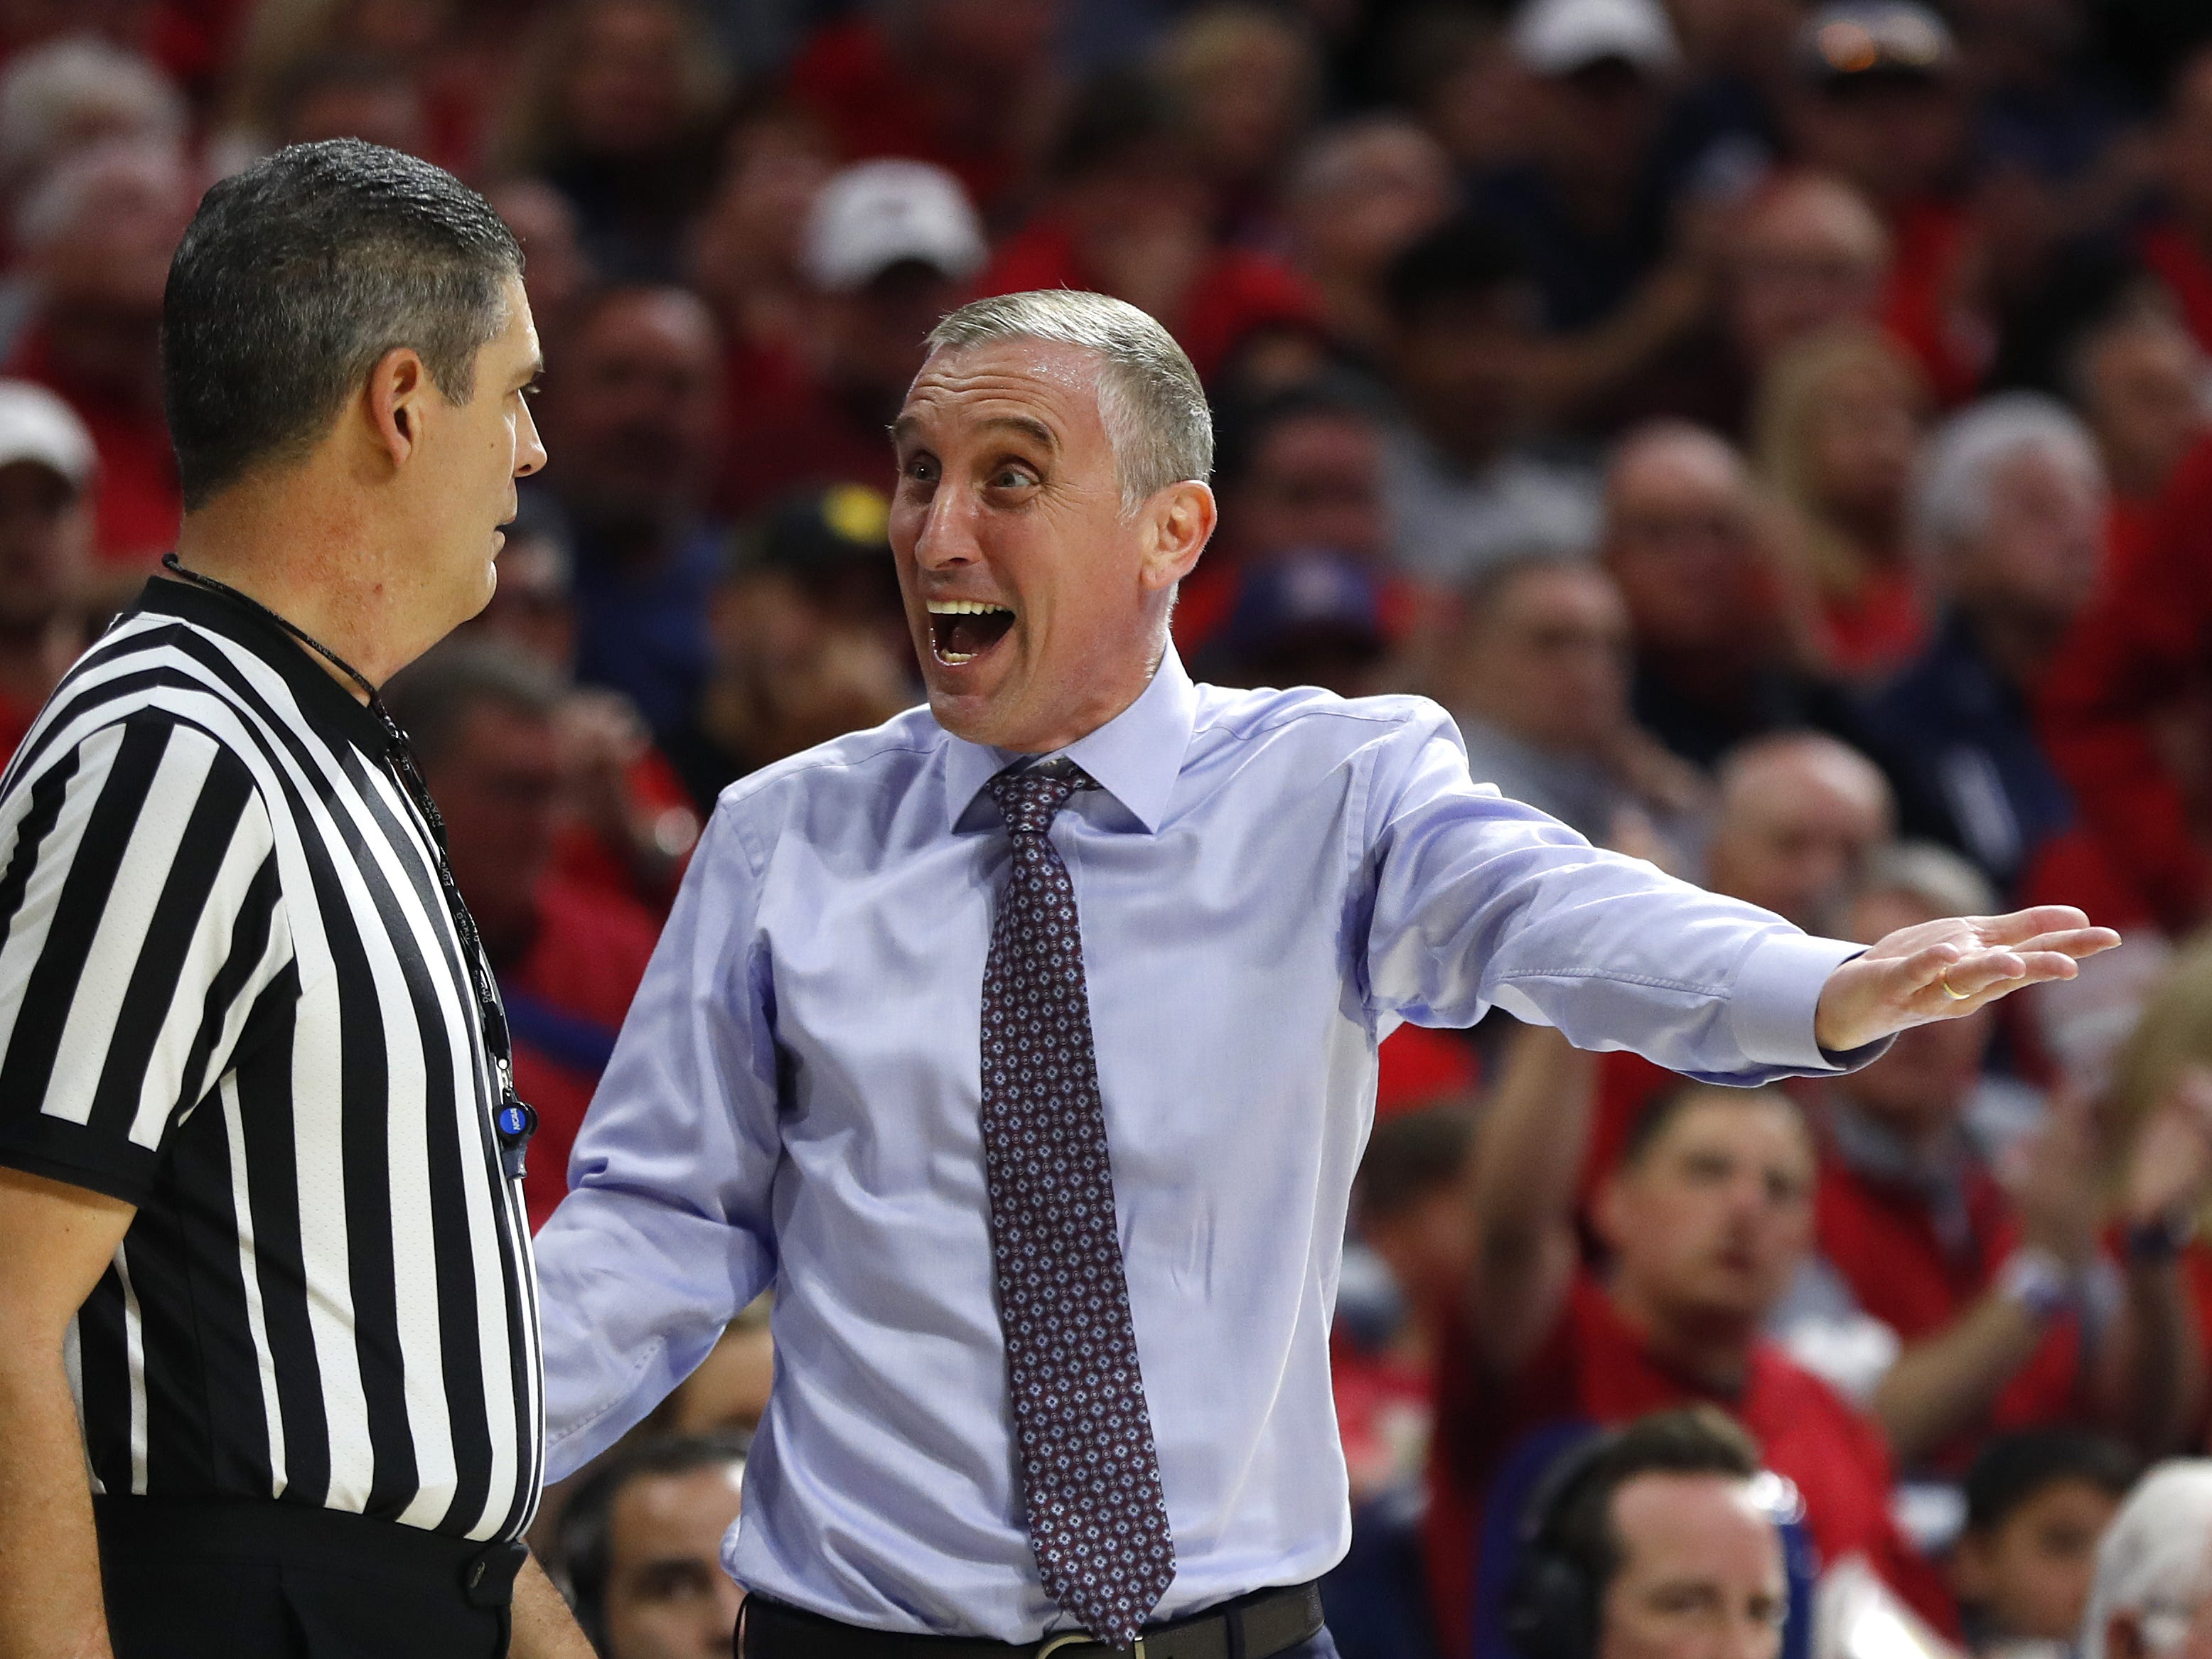 ASU's Bobby Hurley yells at an official during the second half against Arizona at the McKale Memorial Center in Tucson, Ariz. on March 9, 2019.